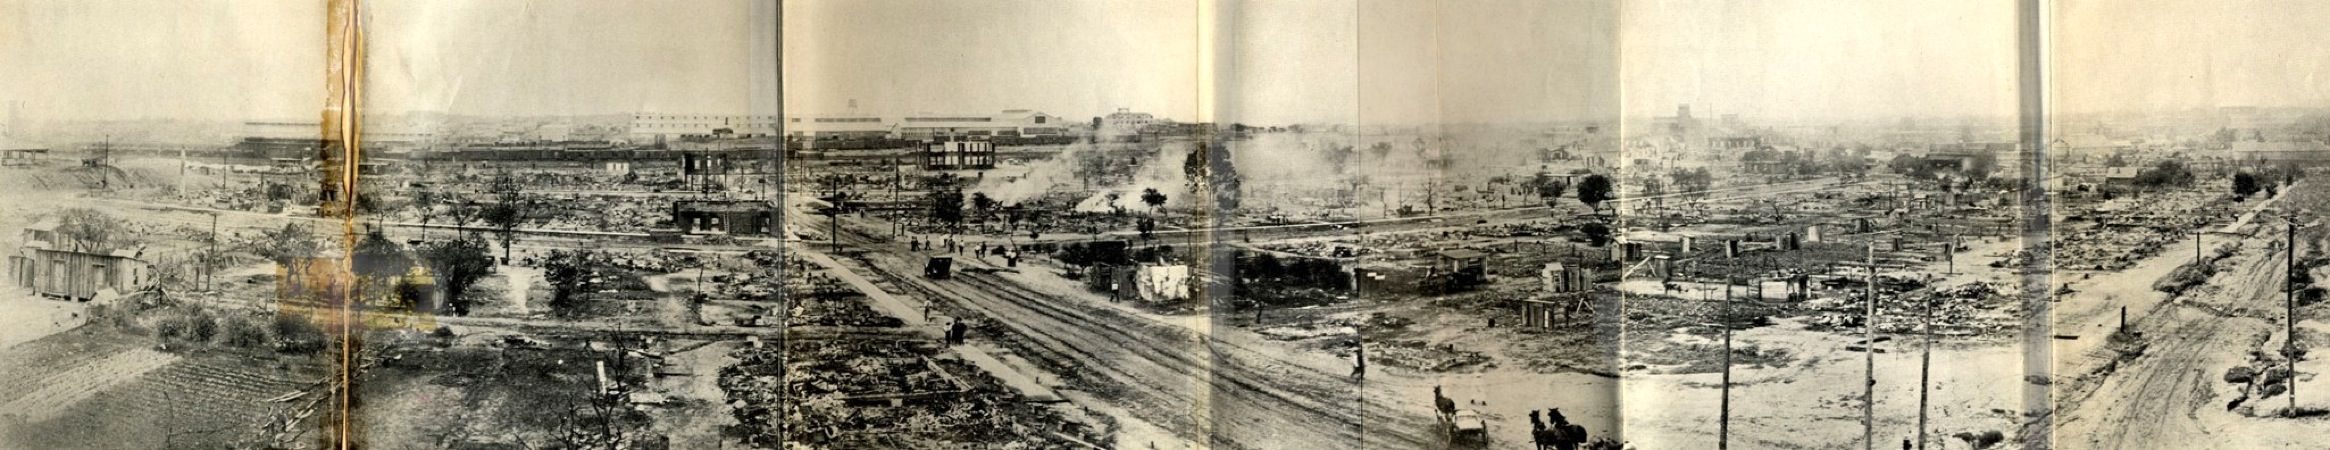 http://upload.wikimedia.org/wikipedia/commons/5/5f/Panorama_of_the_ruined_area_tulsa_race_riots.jpg